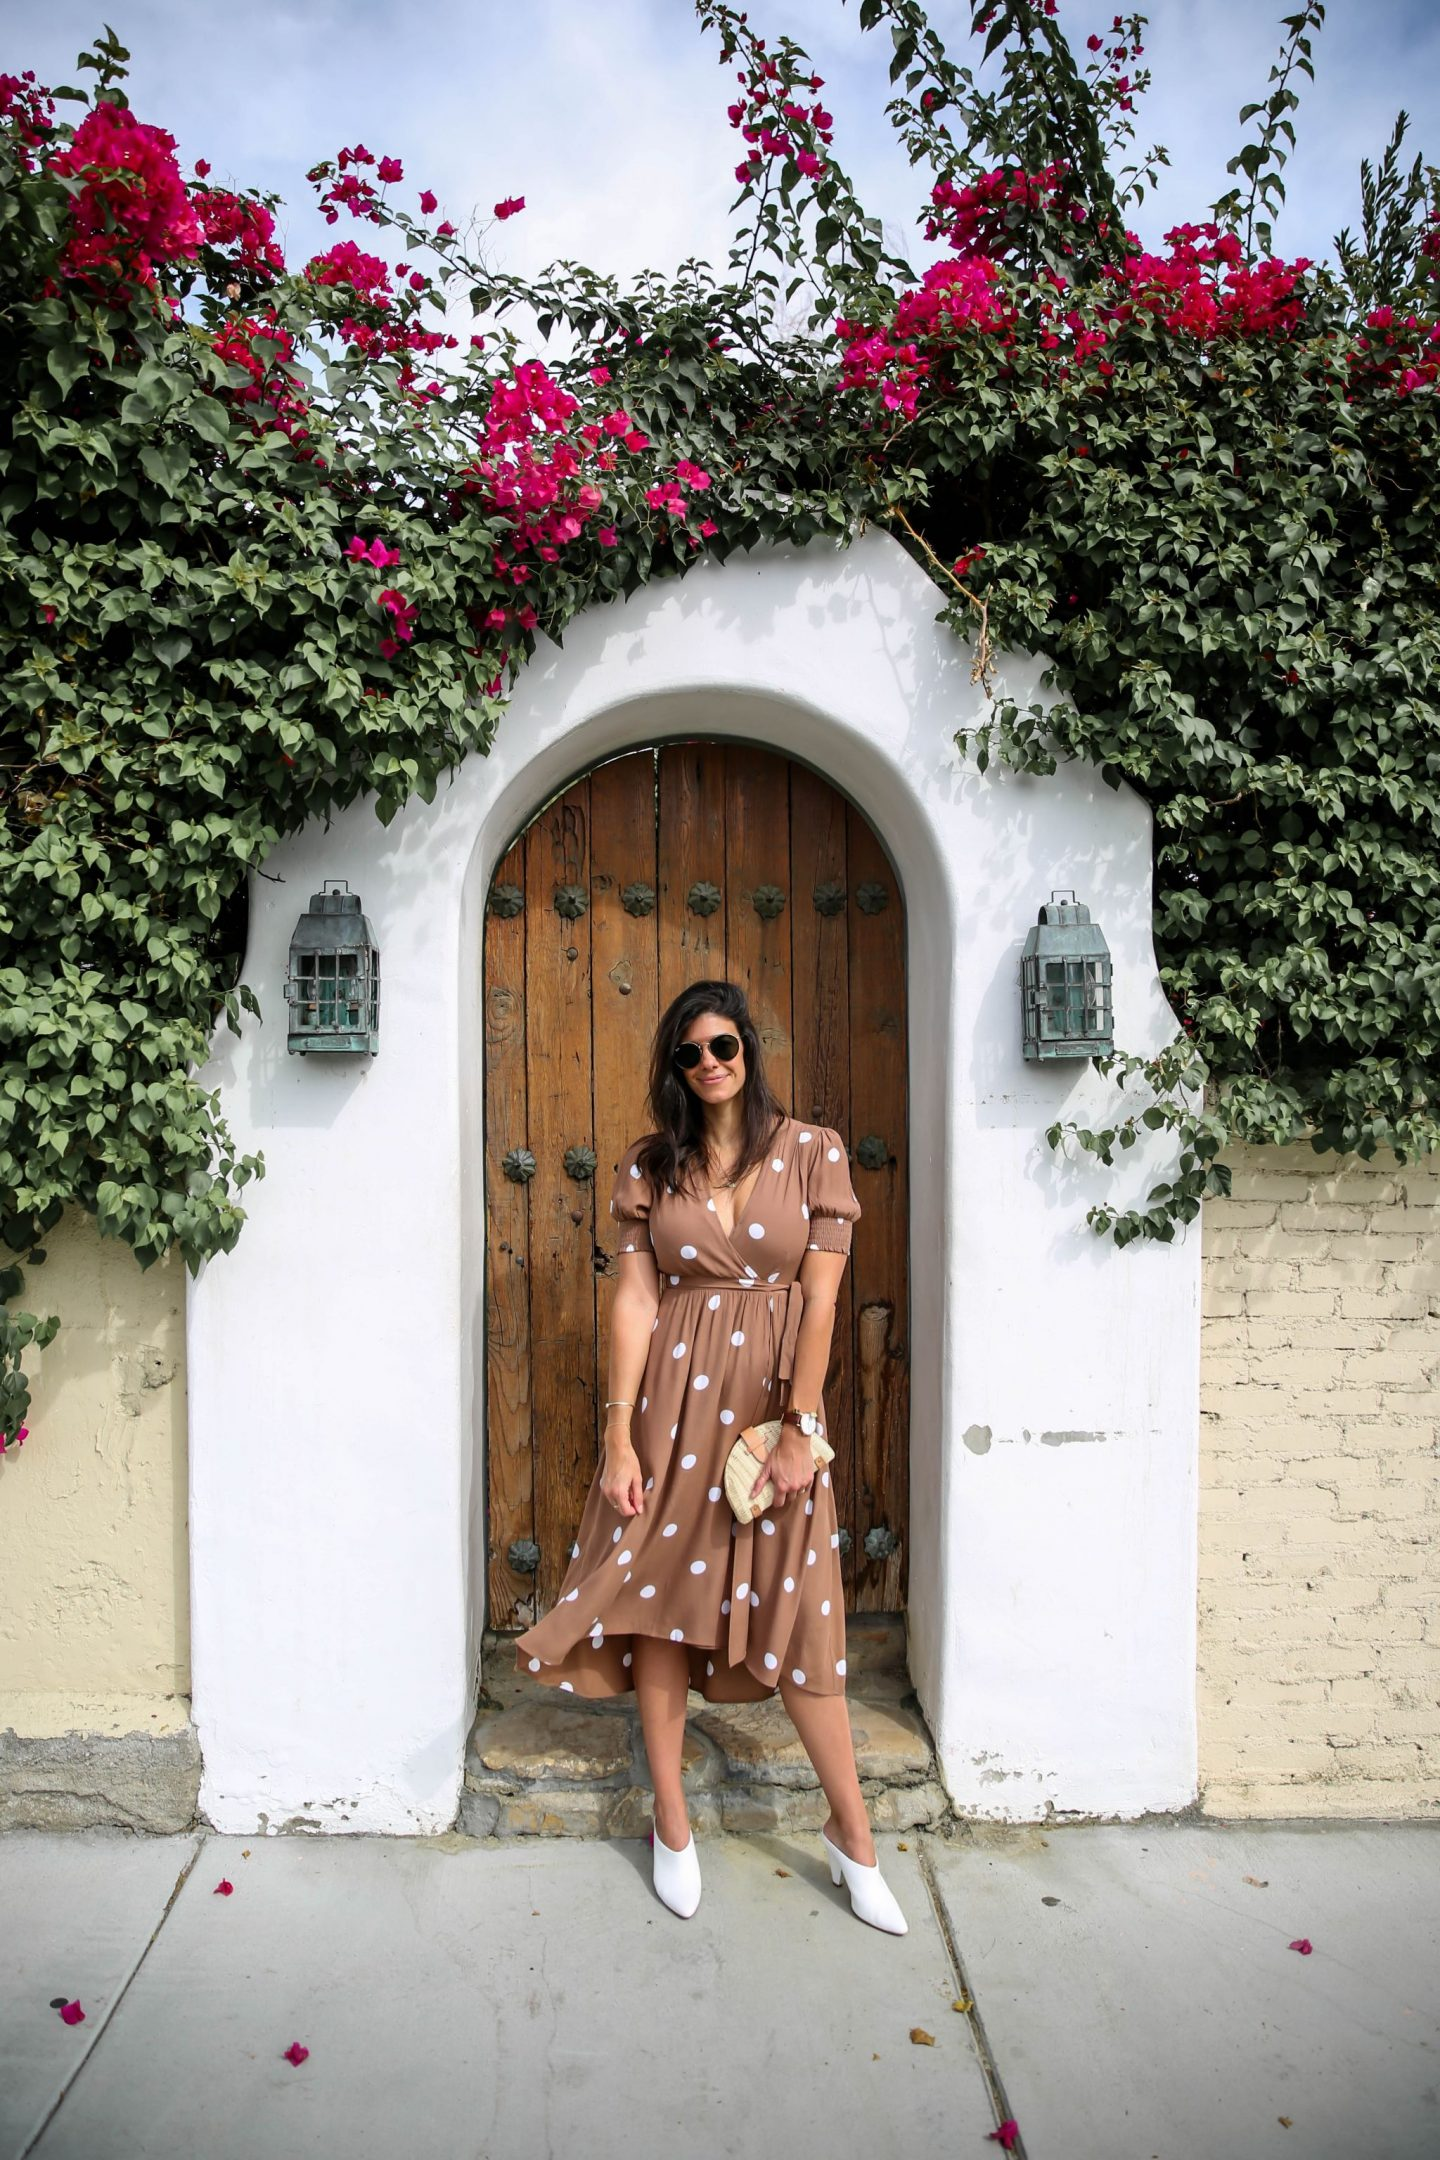 polka dot dress - Palm Springs - Lauren Schwaiger Travel Blogger